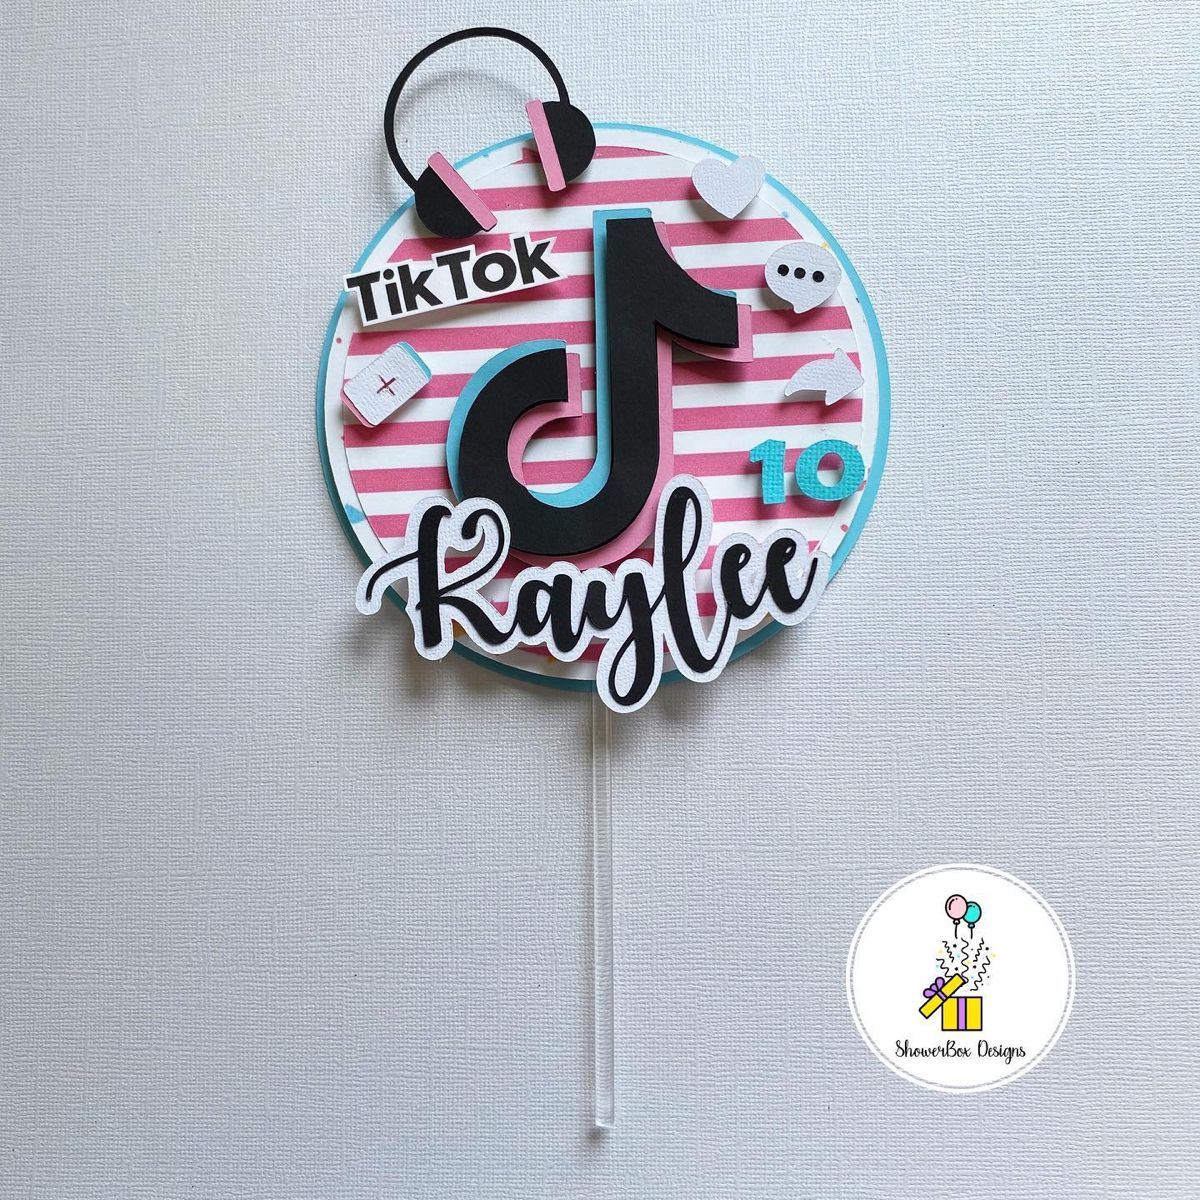 Tiktok 3d Cake Toppers 3d Cake Toppers 3d Cake Cake Toppers